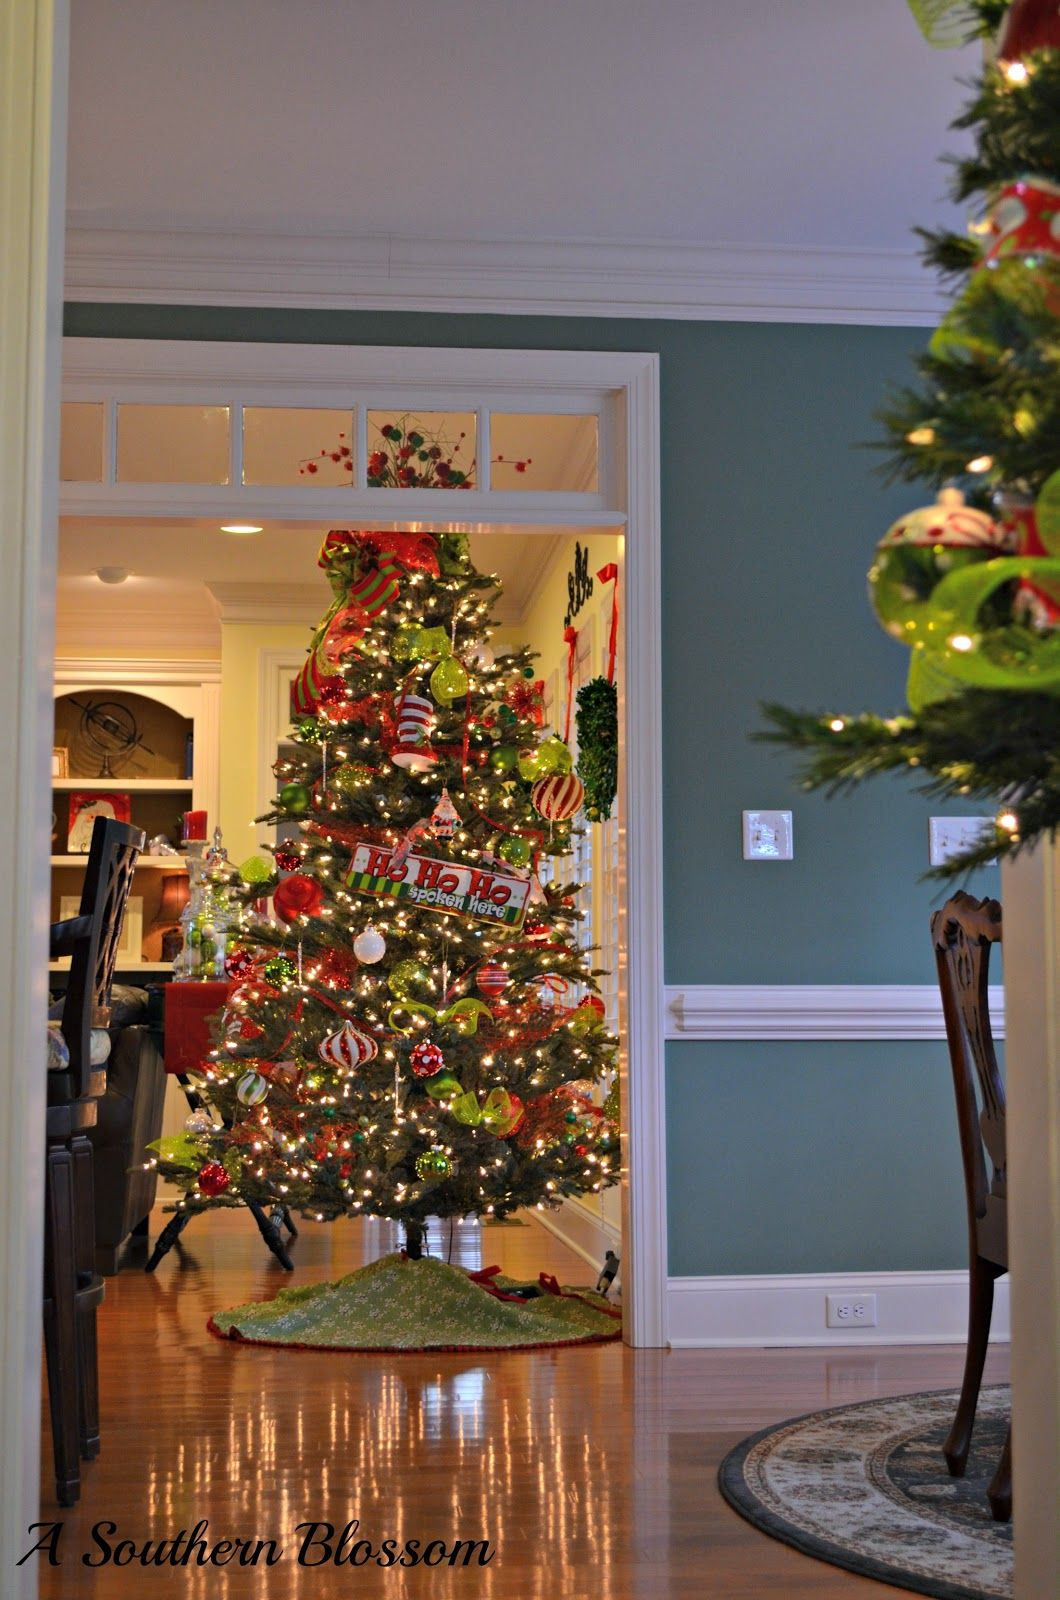 A Southern Blossom: A Christmas Welcome